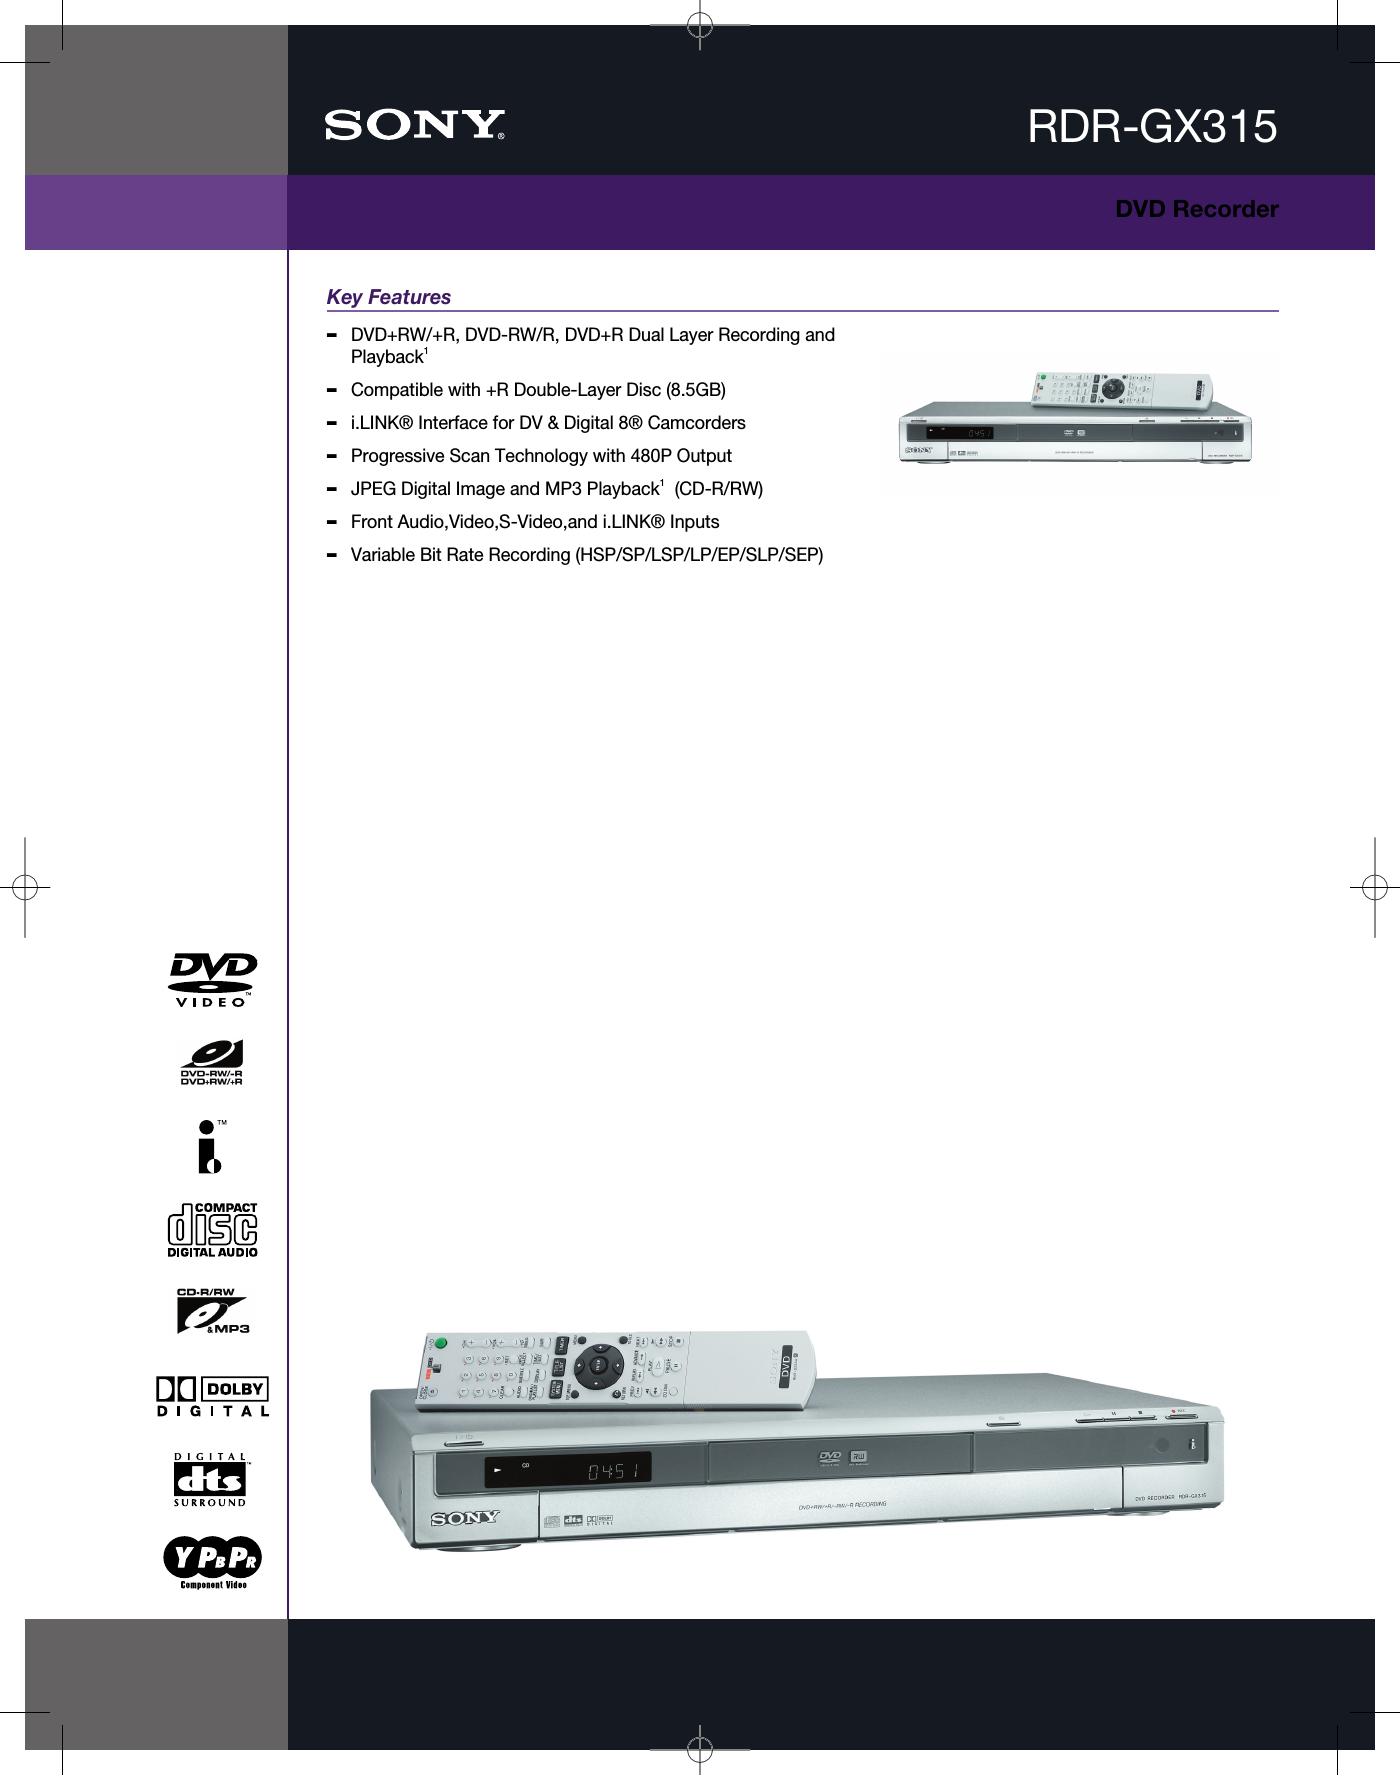 Page 1 of 2 - Sony RDR-GX315 User Manual Marketing Specifications Specs